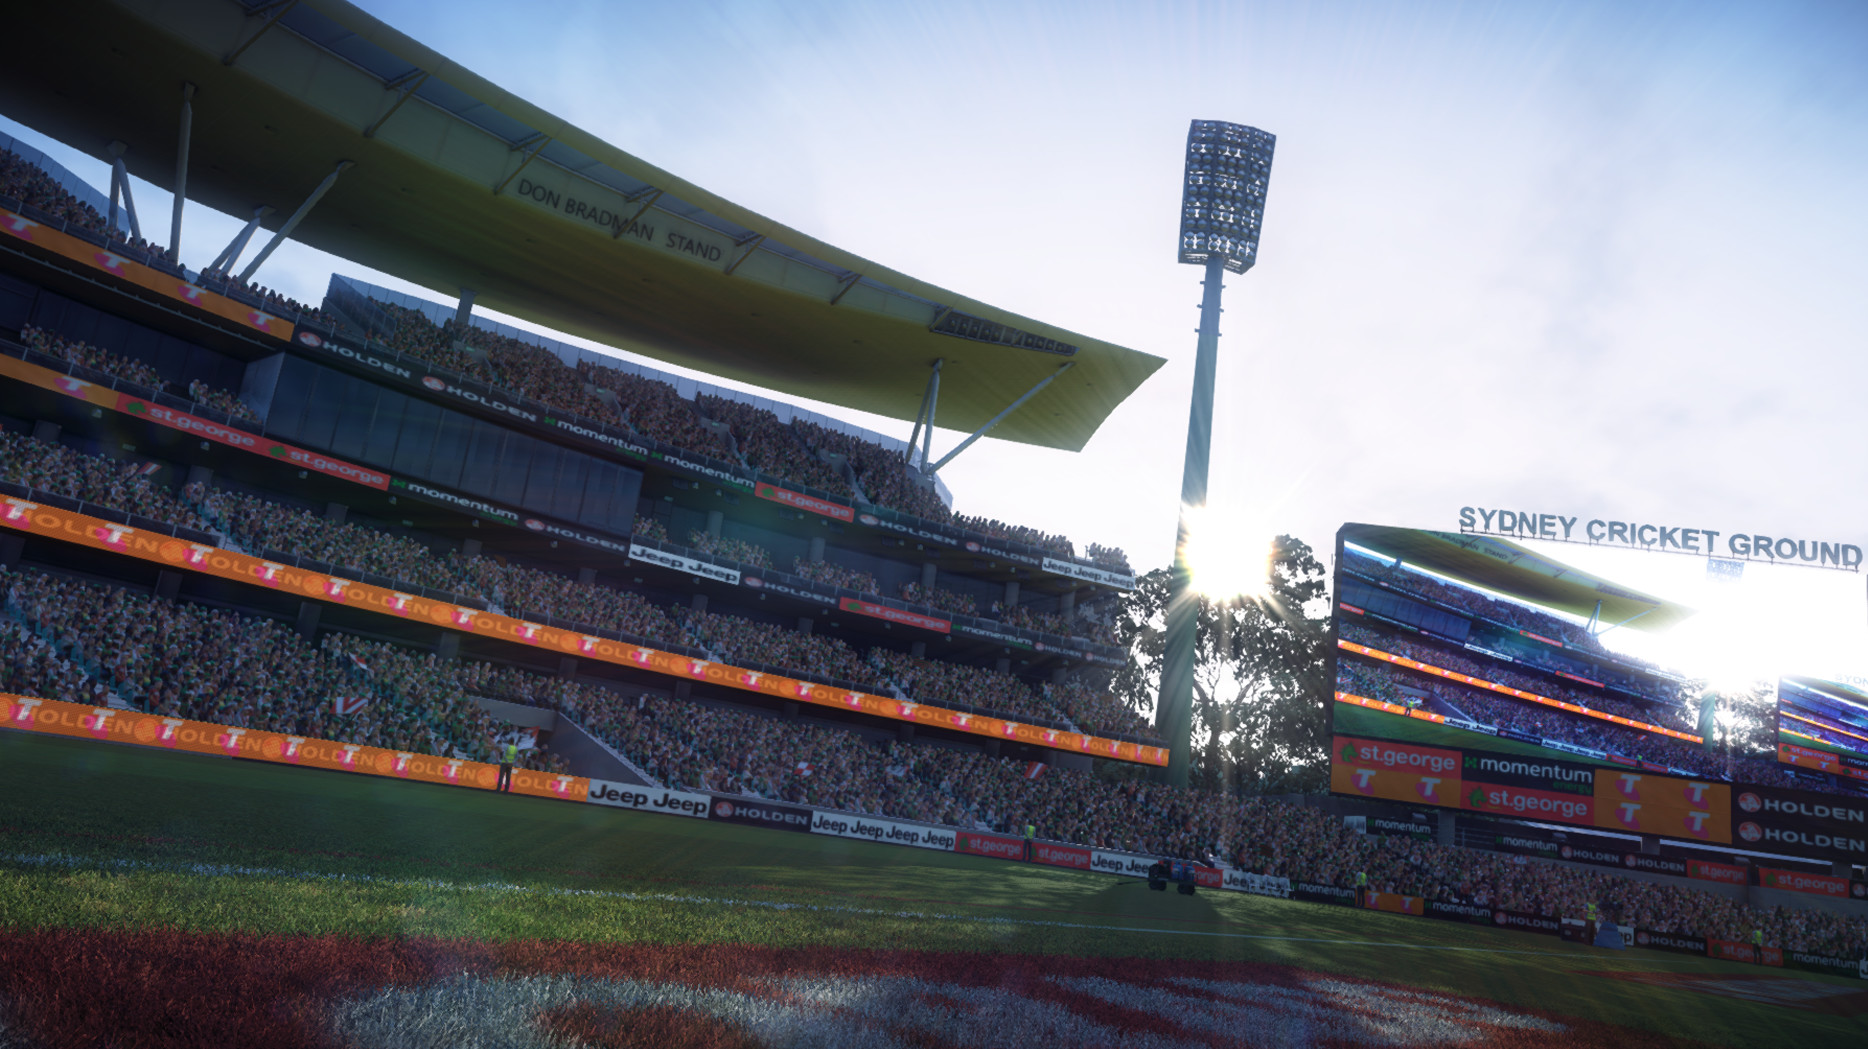 New Sydney cricket ground stand, field grass for all stadiums, trees and sun sprite.